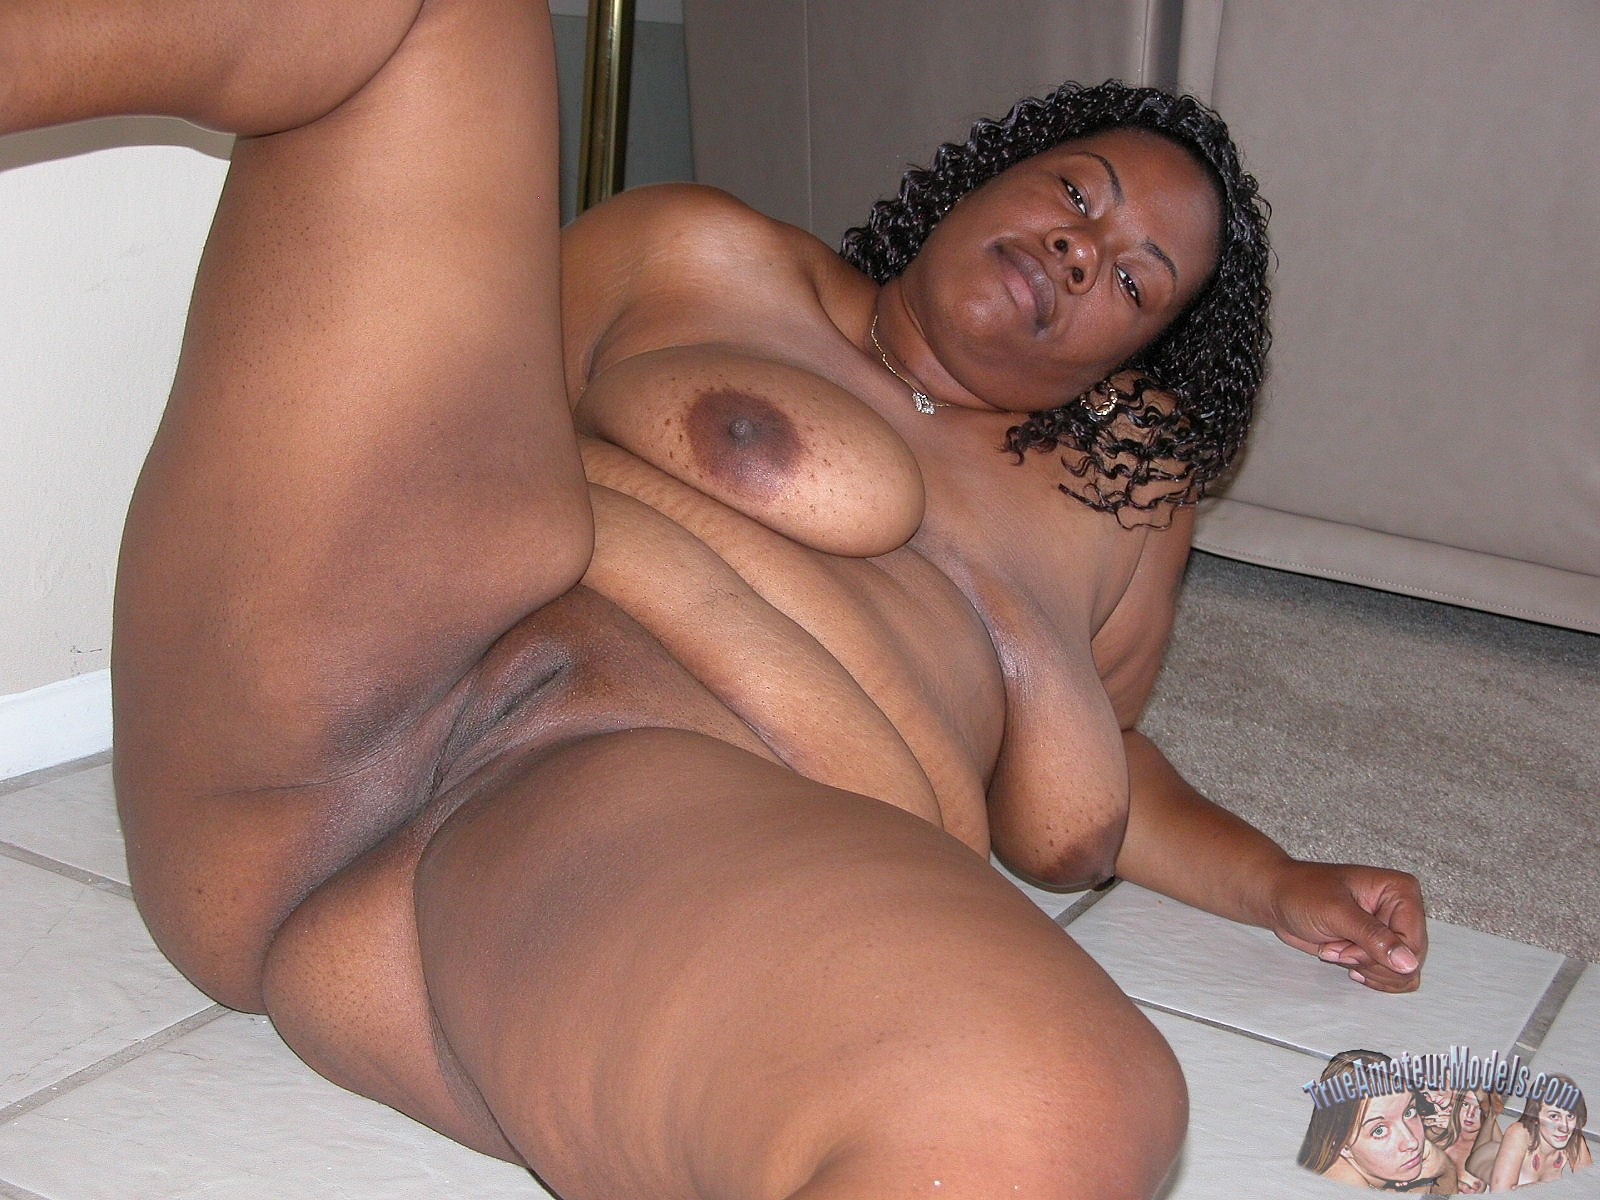 Black Bbw Woman Modeling Nude And Spreading Apart Her -6052